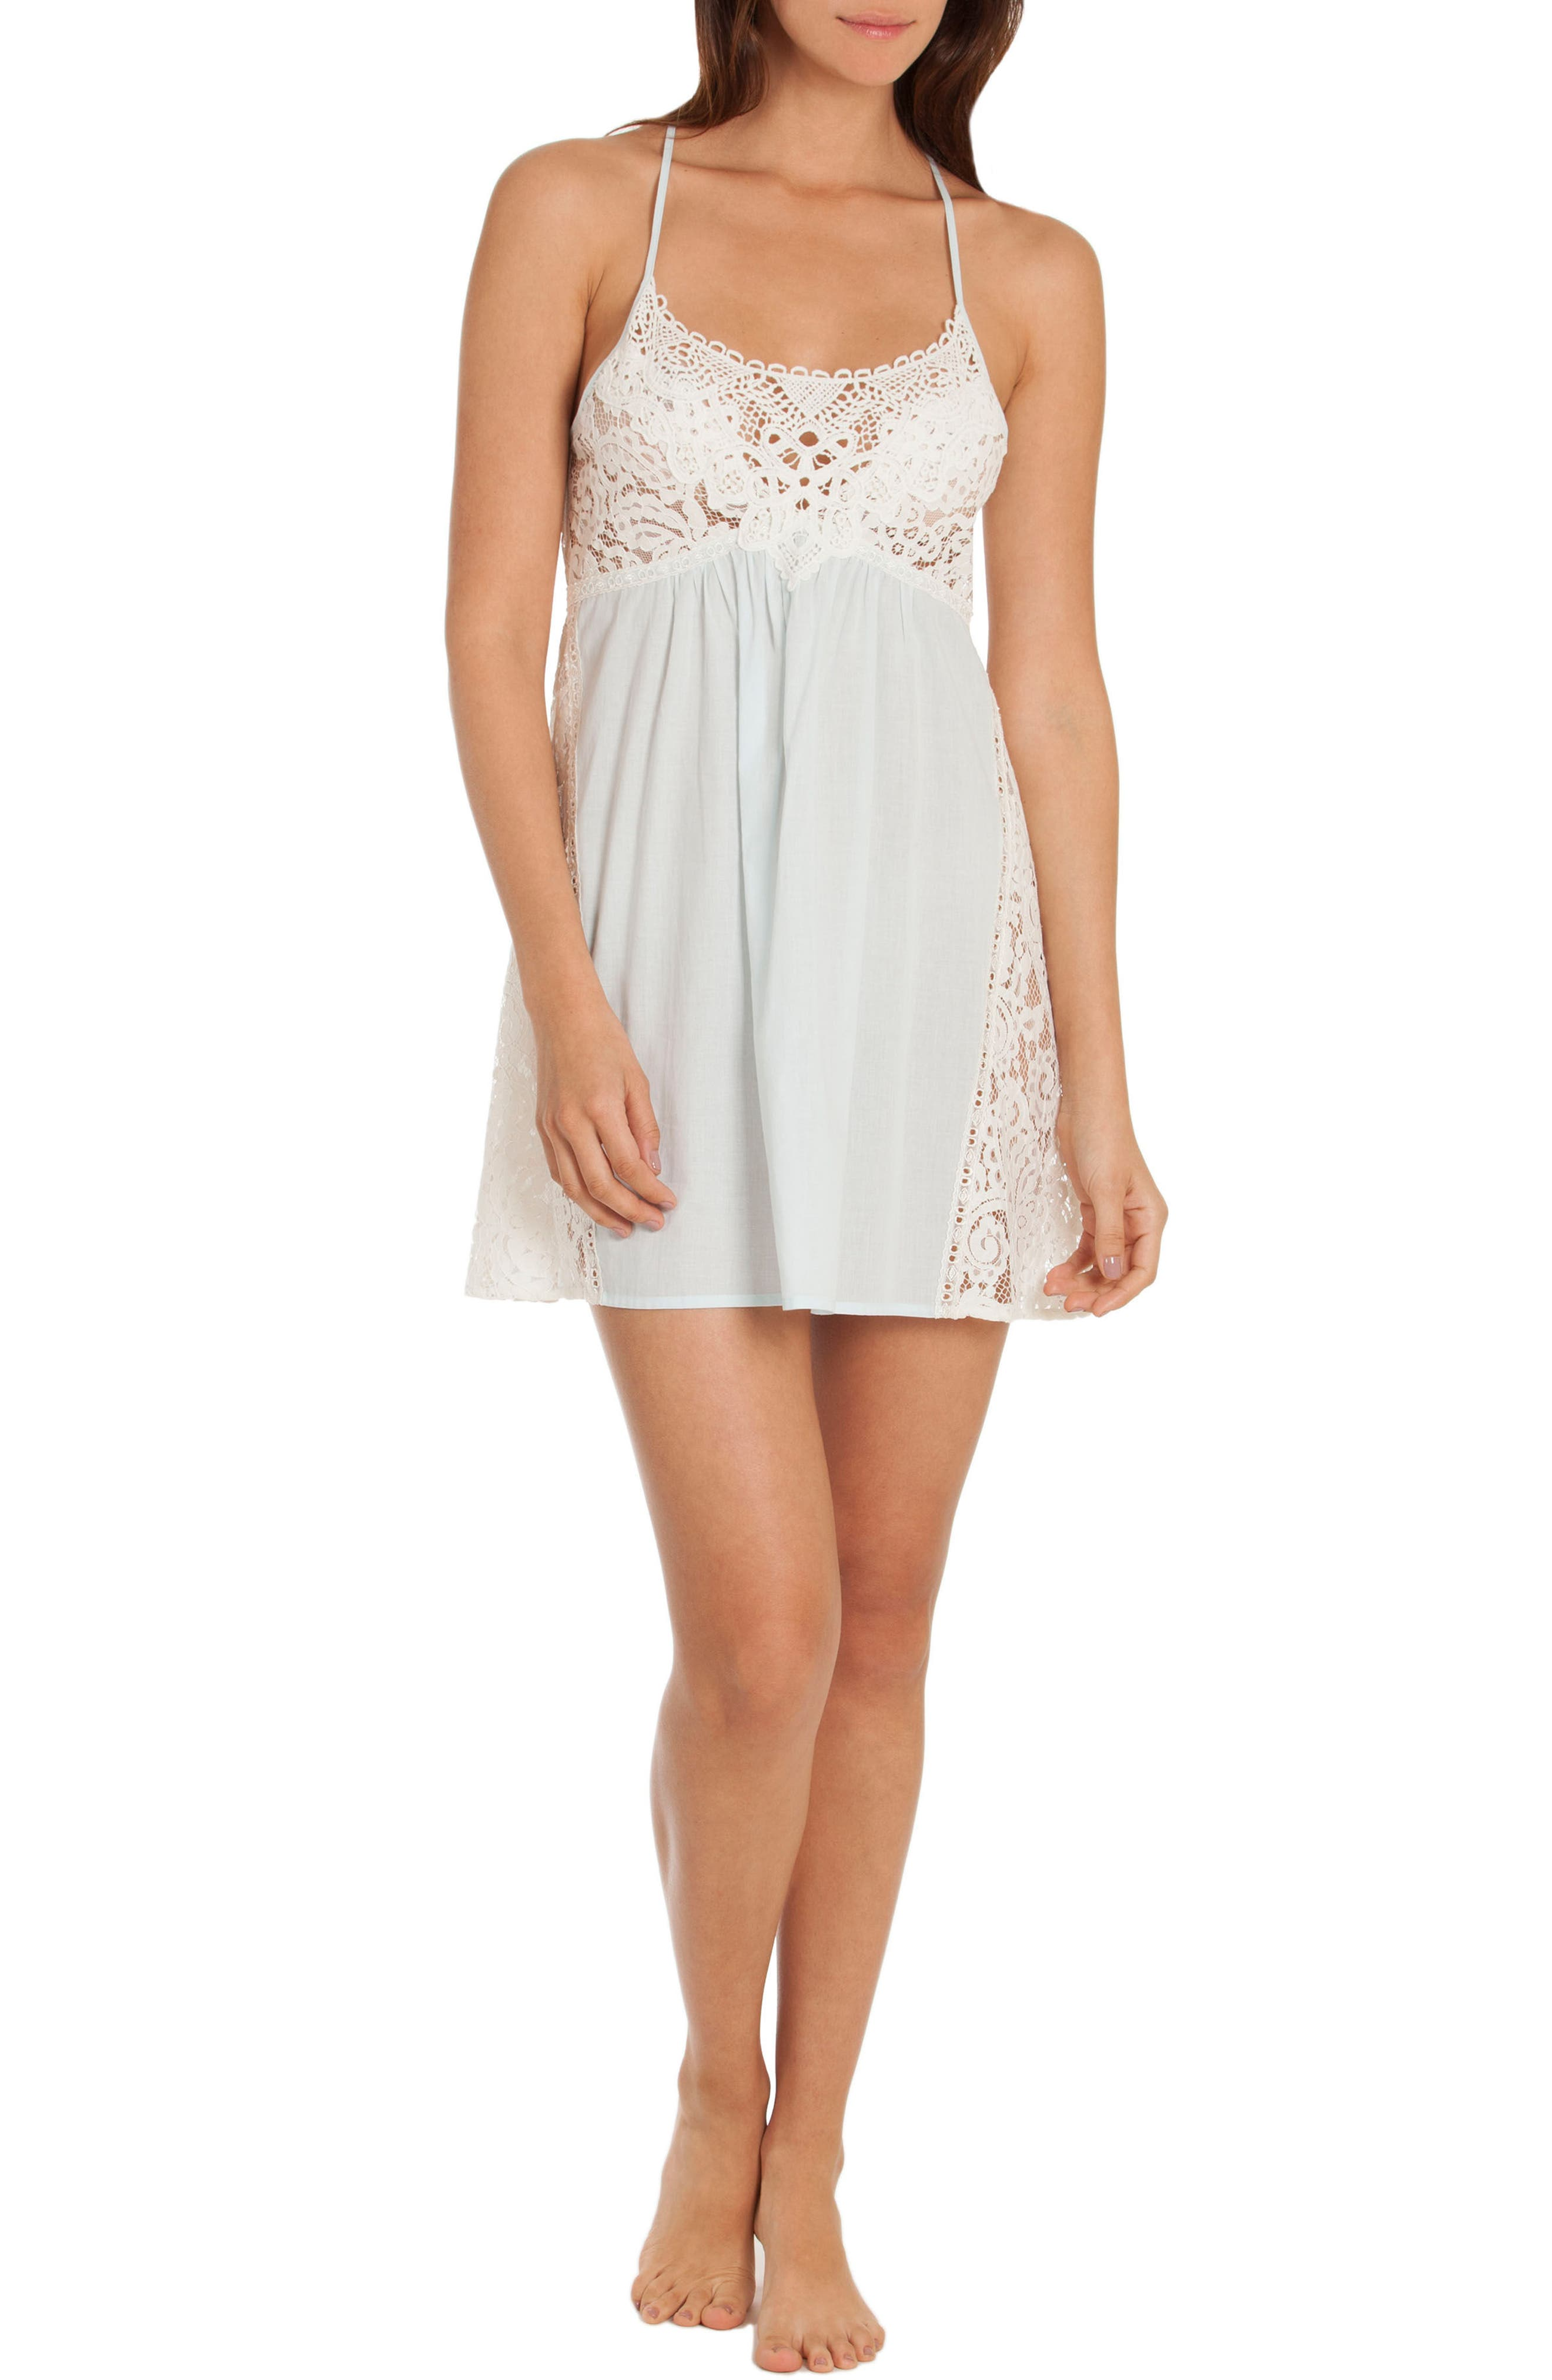 Lace Chemise,                             Alternate thumbnail 4, color,                             Skyfall/ Beige